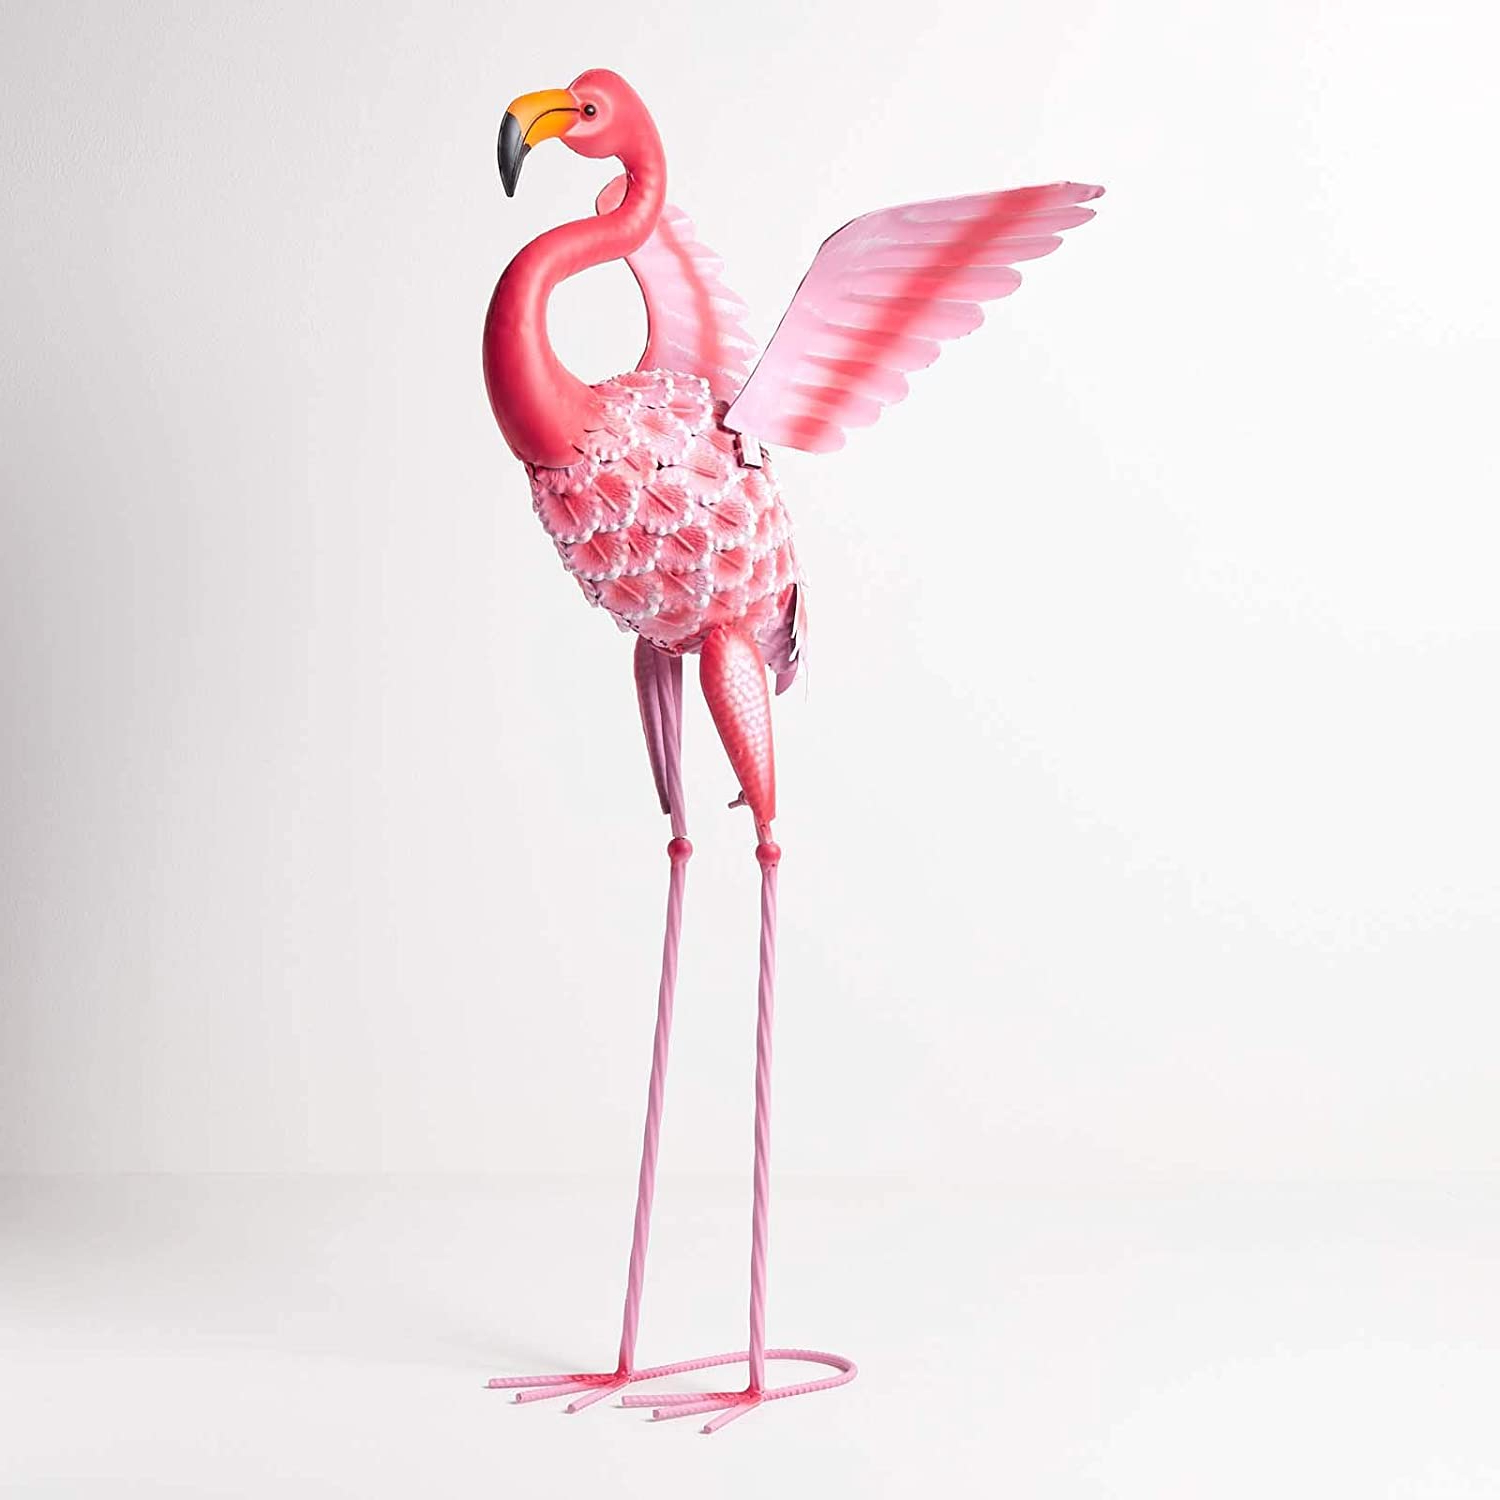 [%homescapes Metal Garden Bright Pink Flamingo Statue With Raised Wings And Detailed Feathers Handcrafted From 100% Iron Free Standing Lawn Ornament With Regard To Preferred Flamingo Metal Garden Benches|flamingo Metal Garden Benches With Regard To 2020 Homescapes Metal Garden Bright Pink Flamingo Statue With Raised Wings And Detailed Feathers Handcrafted From 100% Iron Free Standing Lawn Ornament|well Known Flamingo Metal Garden Benches In Homescapes Metal Garden Bright Pink Flamingo Statue With Raised Wings And Detailed Feathers Handcrafted From 100% Iron Free Standing Lawn Ornament|fashionable Homescapes Metal Garden Bright Pink Flamingo Statue With Raised Wings And Detailed Feathers Handcrafted From 100% Iron Free Standing Lawn Ornament With Flamingo Metal Garden Benches%] (View 3 of 30)